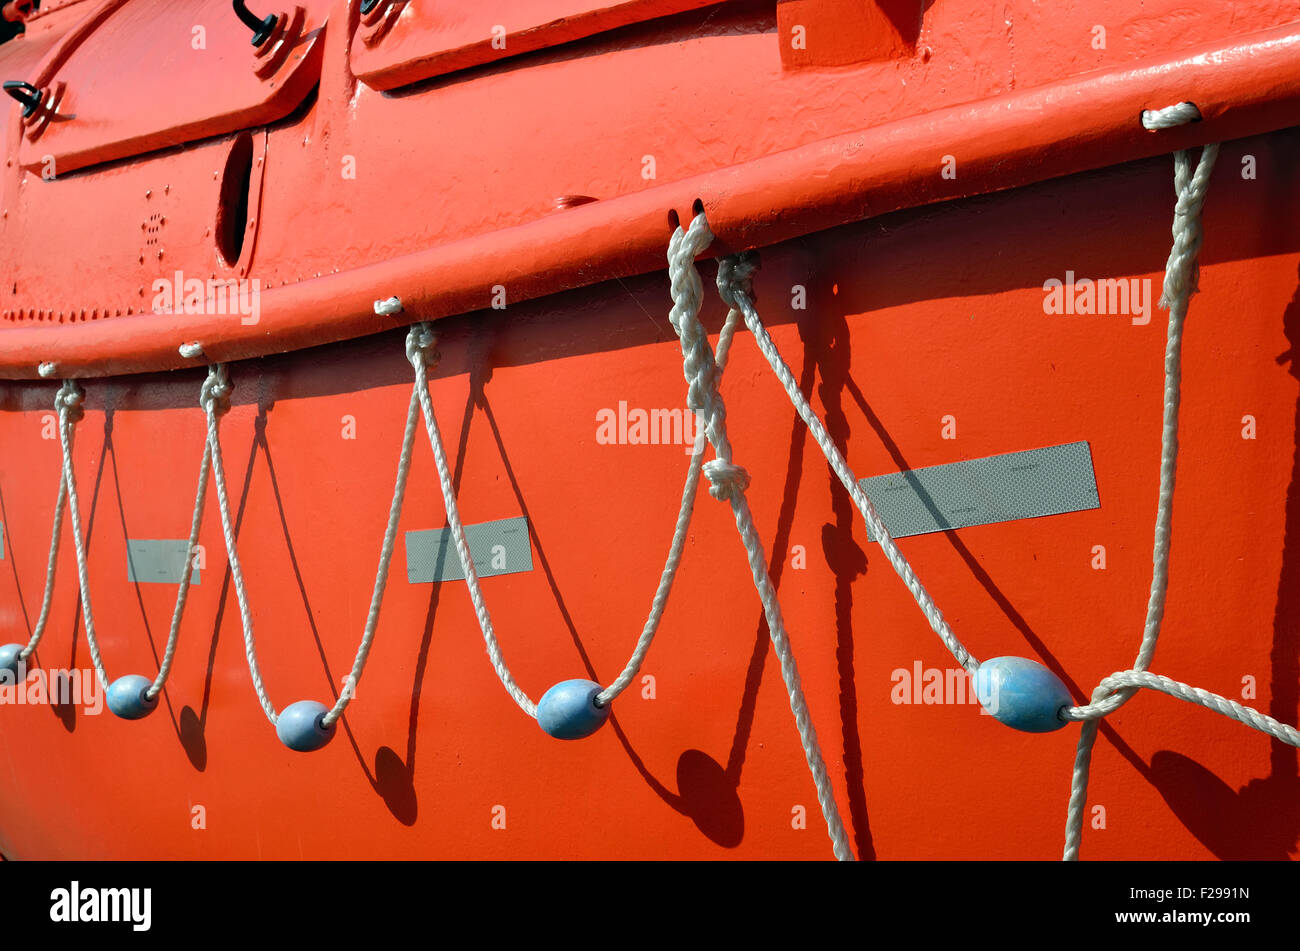 Board the lifeboat with a Leer and floats - Stock Image